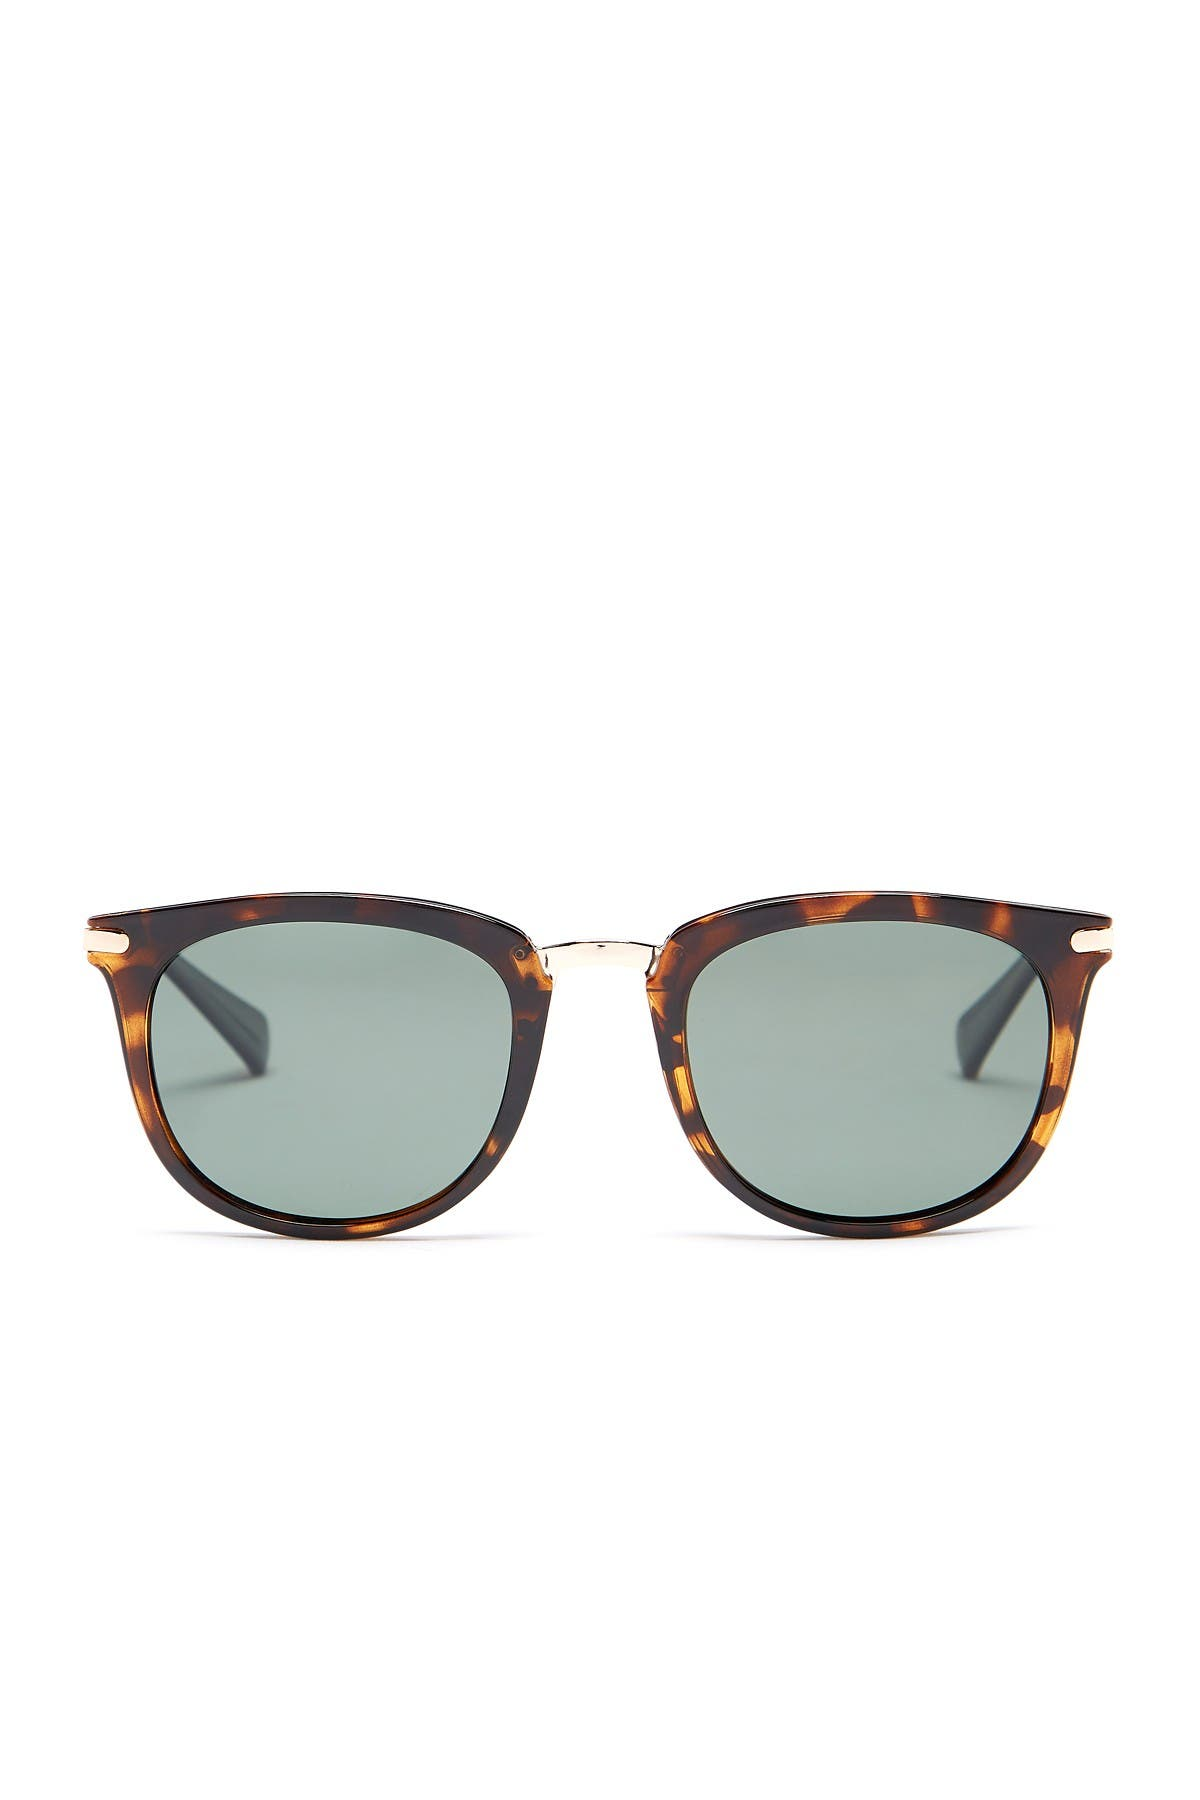 Image of Cole Haan Polarized 52mm Square Sunglasses